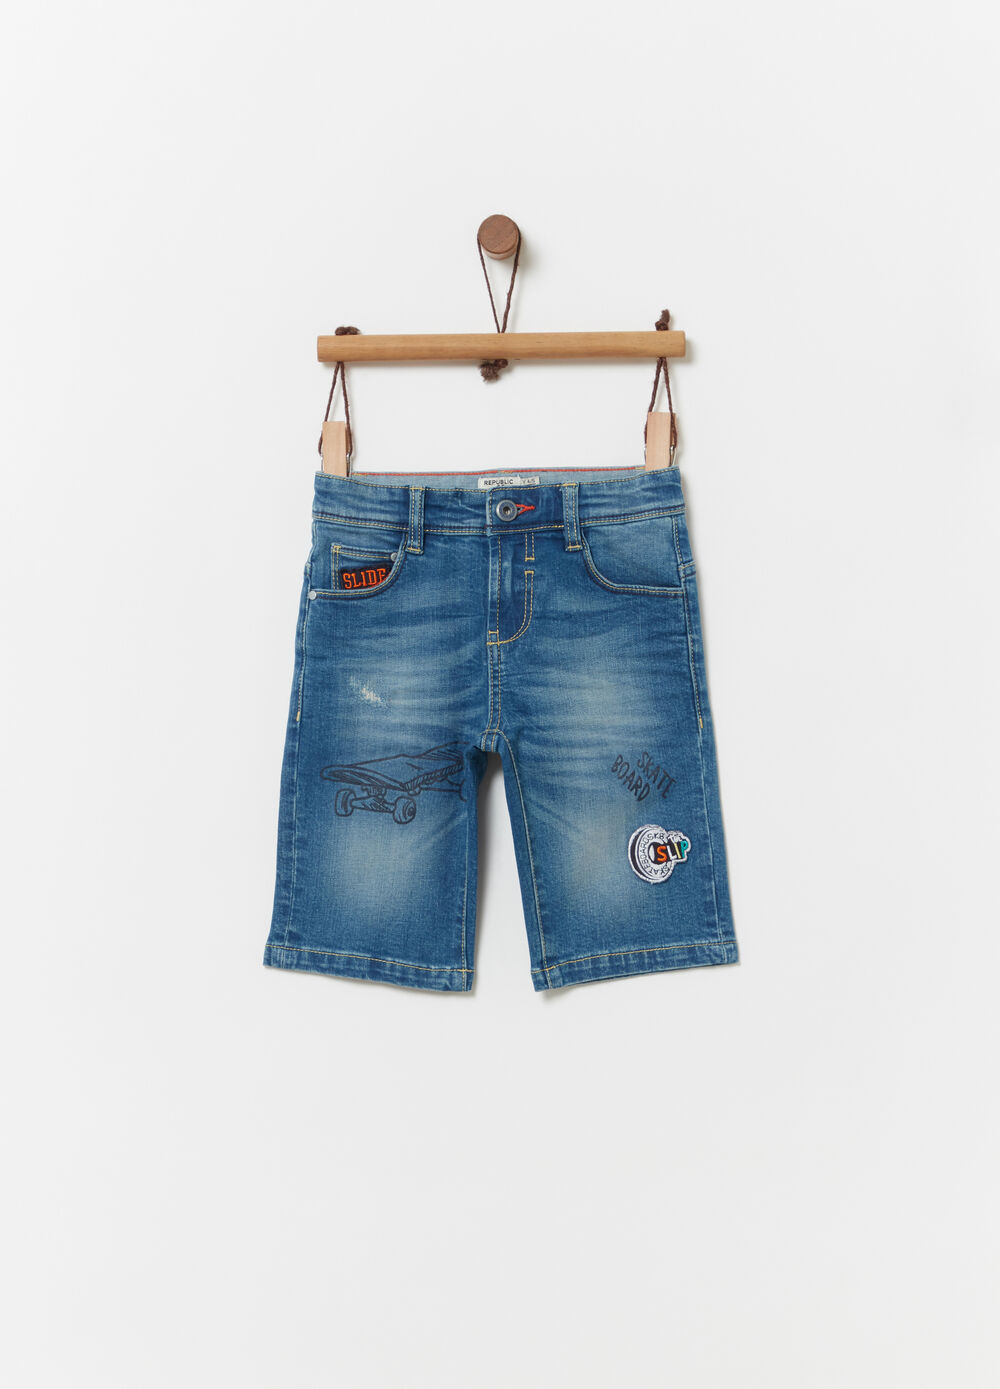 Denim shorts with faded effect and embroidery